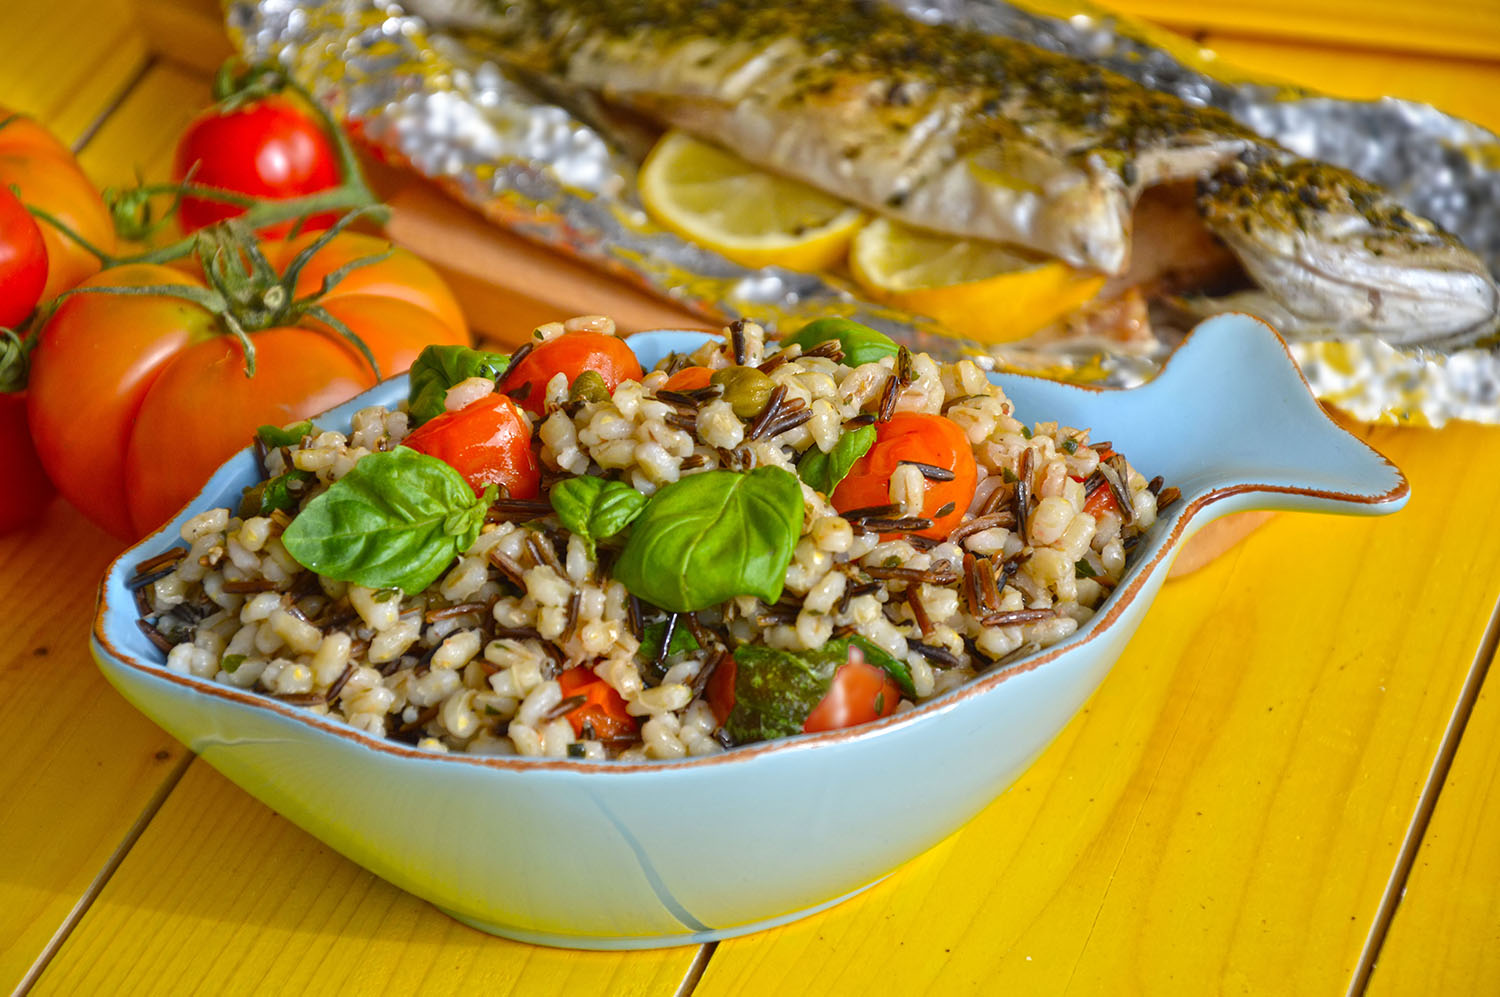 Toasted barley and wild rice salad